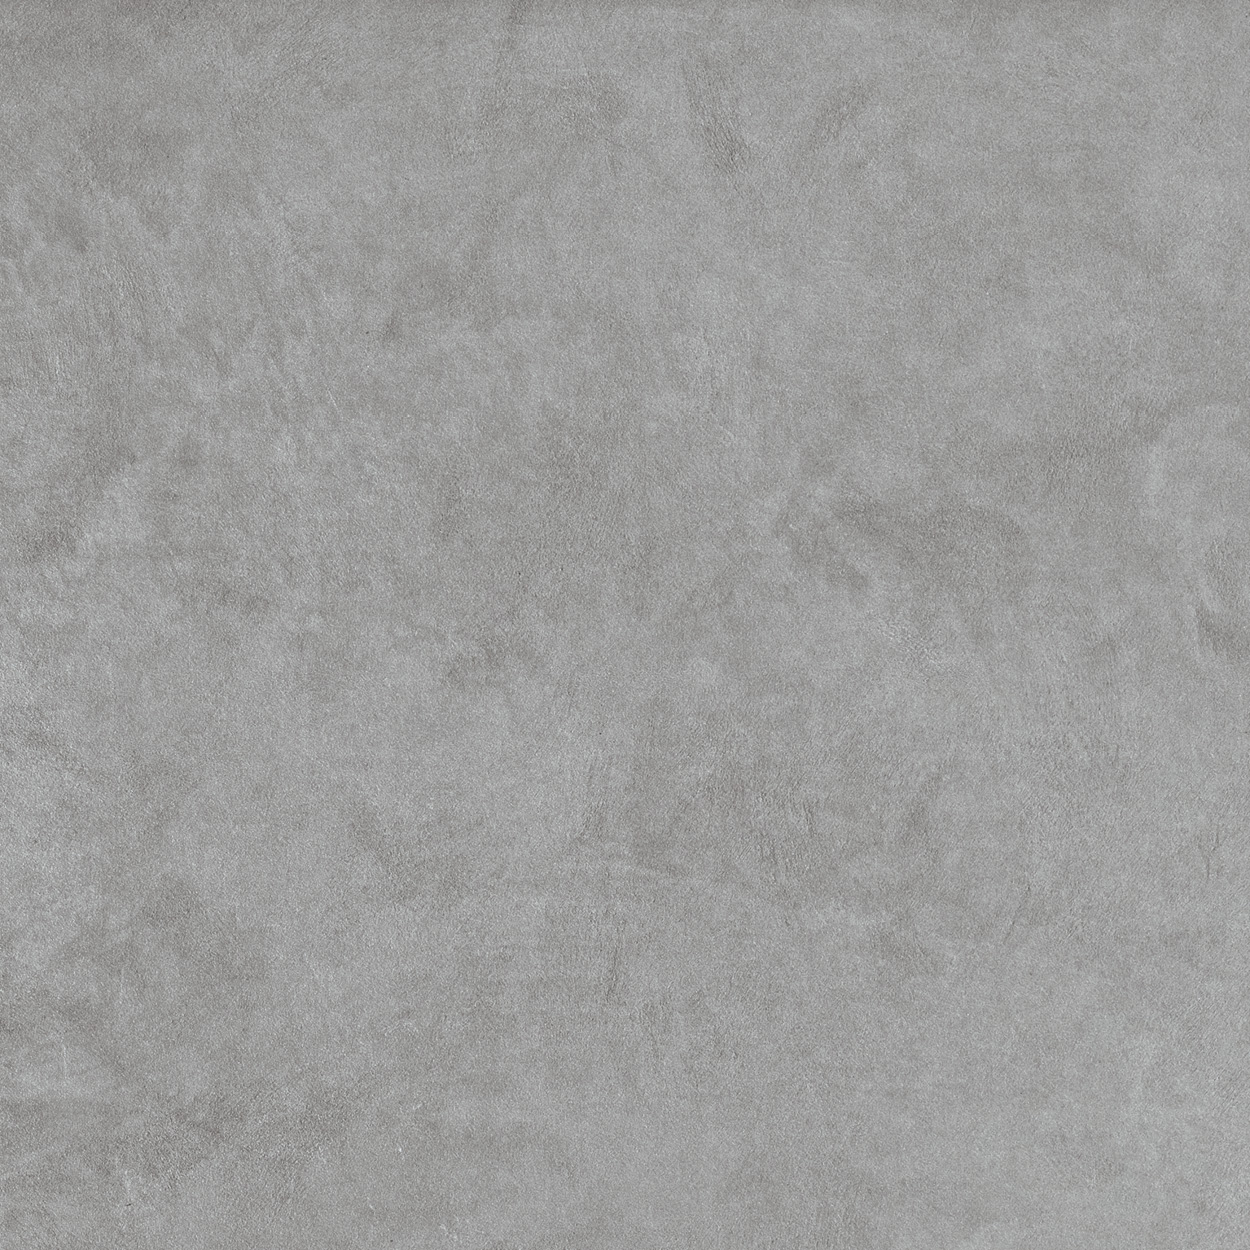 32 x 32 Seamless CL_01 Porcelain tile (SPECIAL ORDER ONLY)